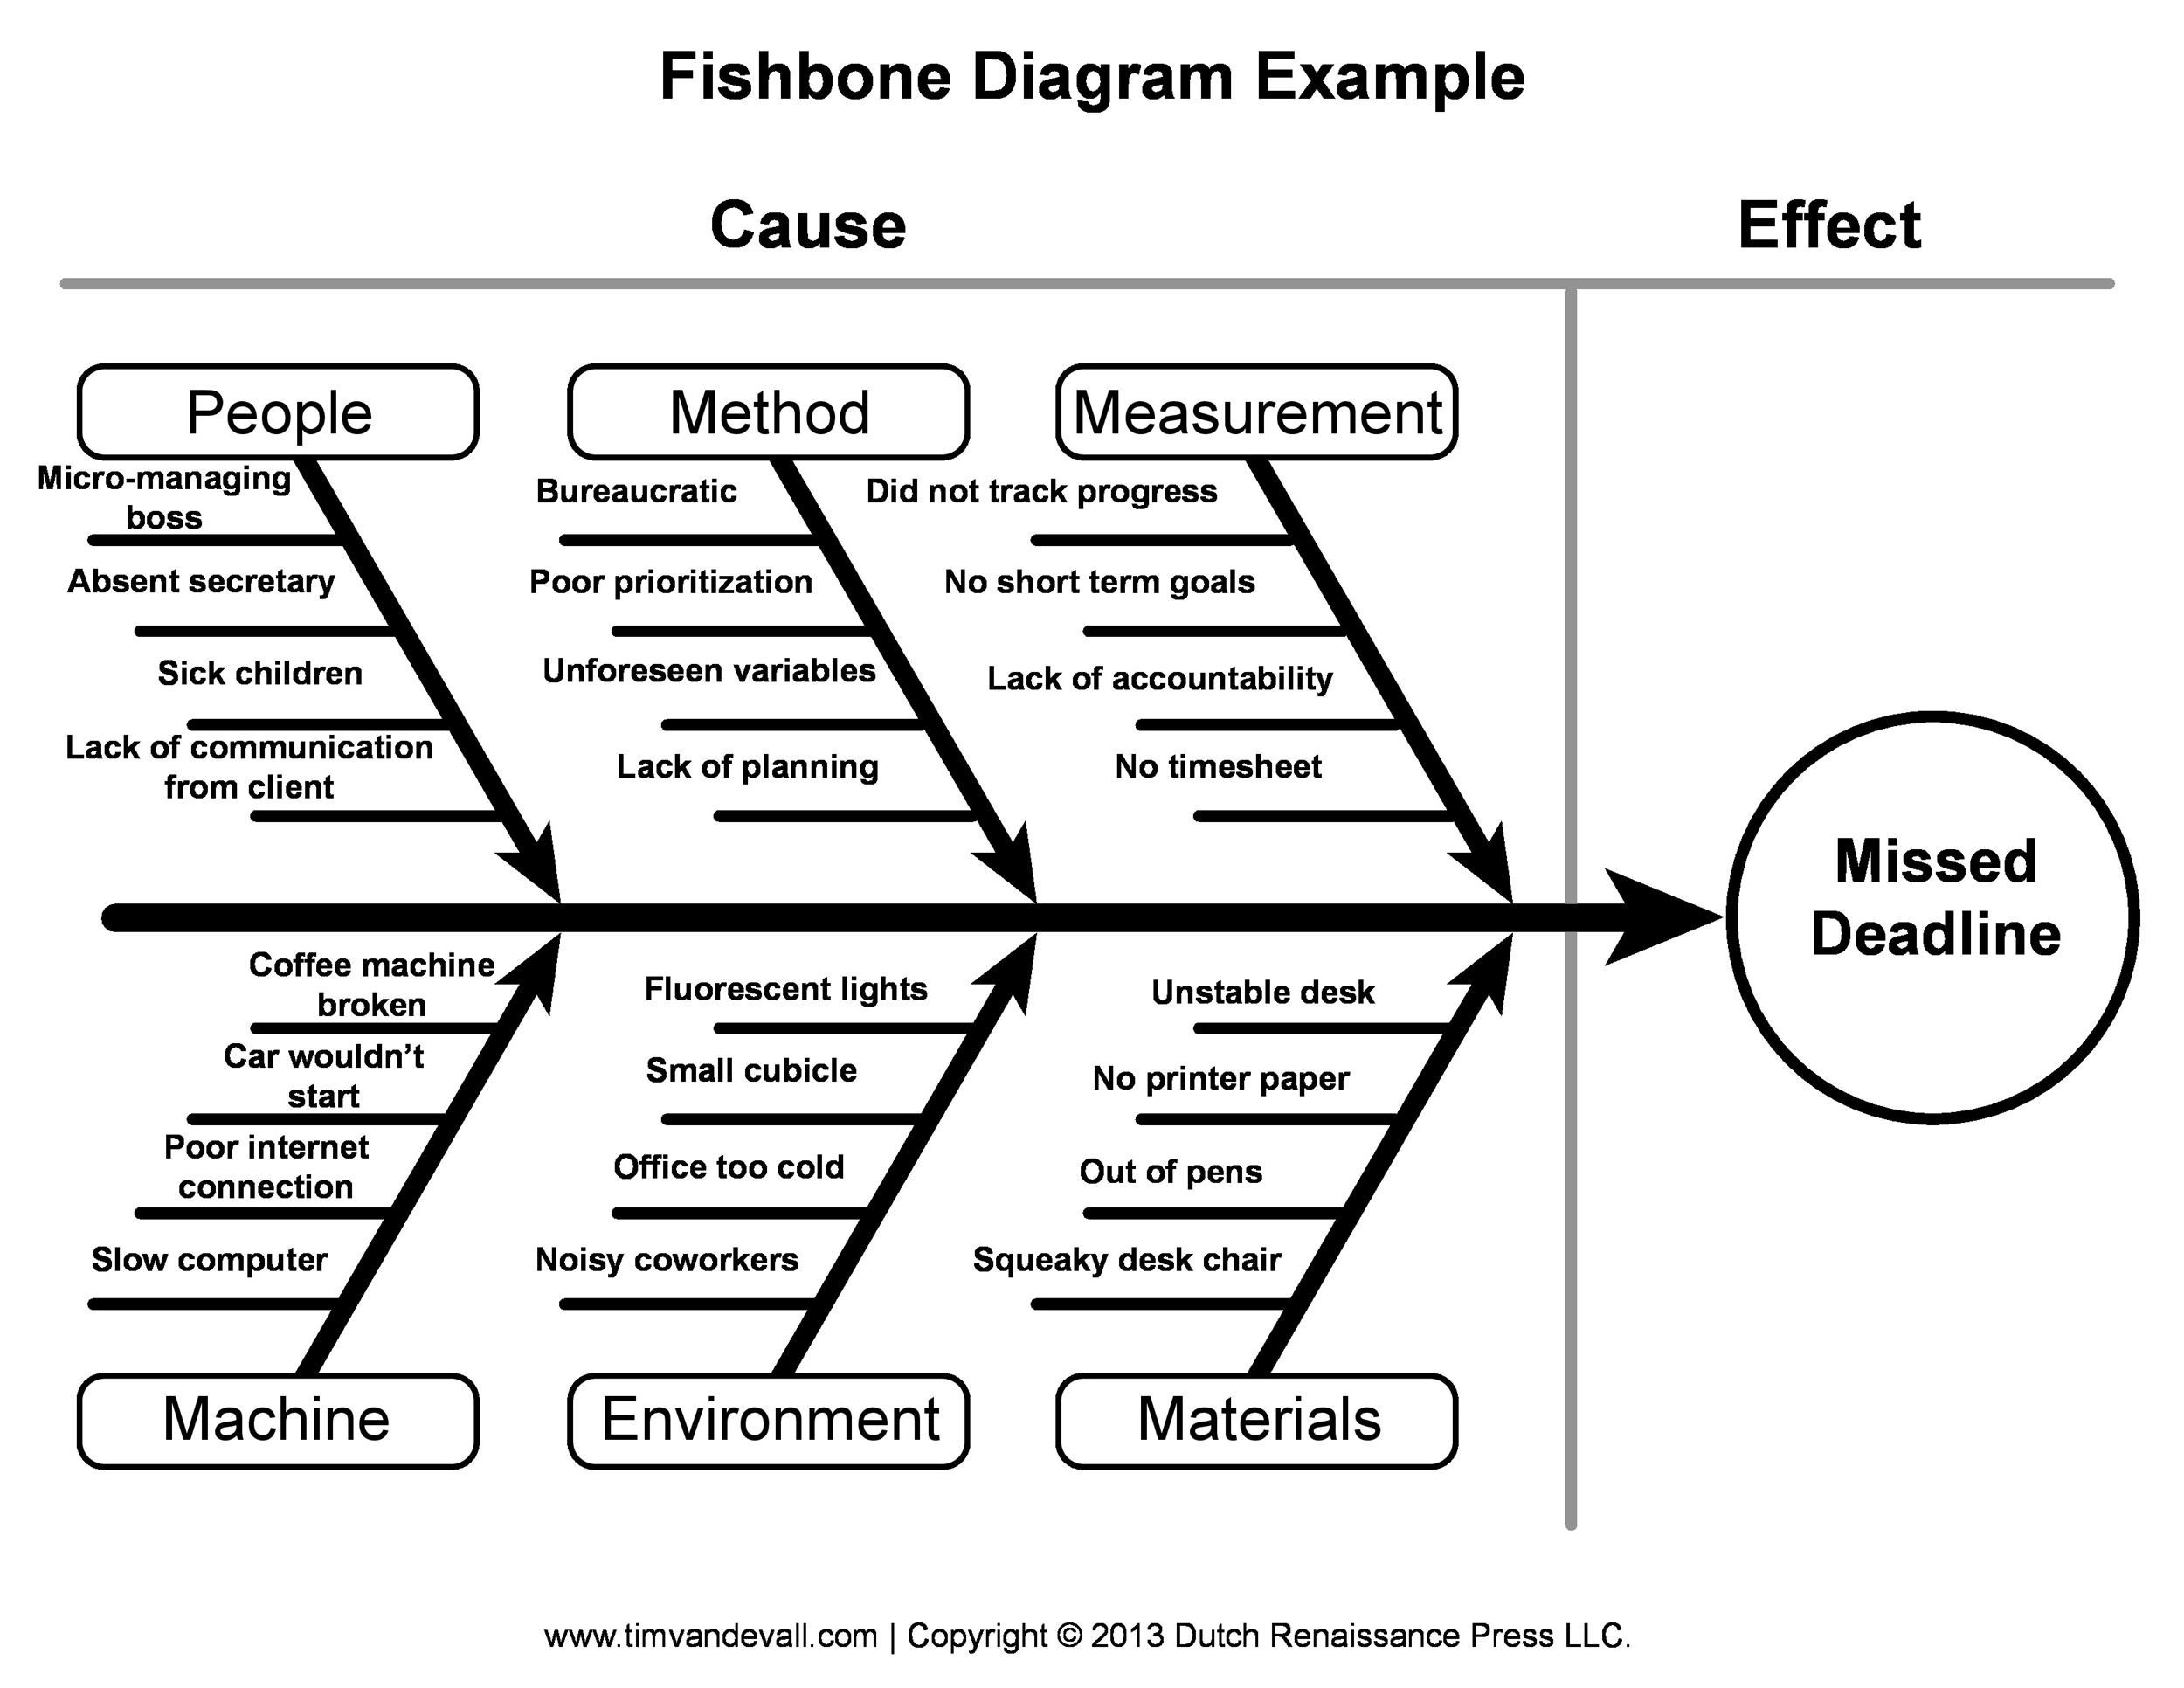 fishbone diagram - Template